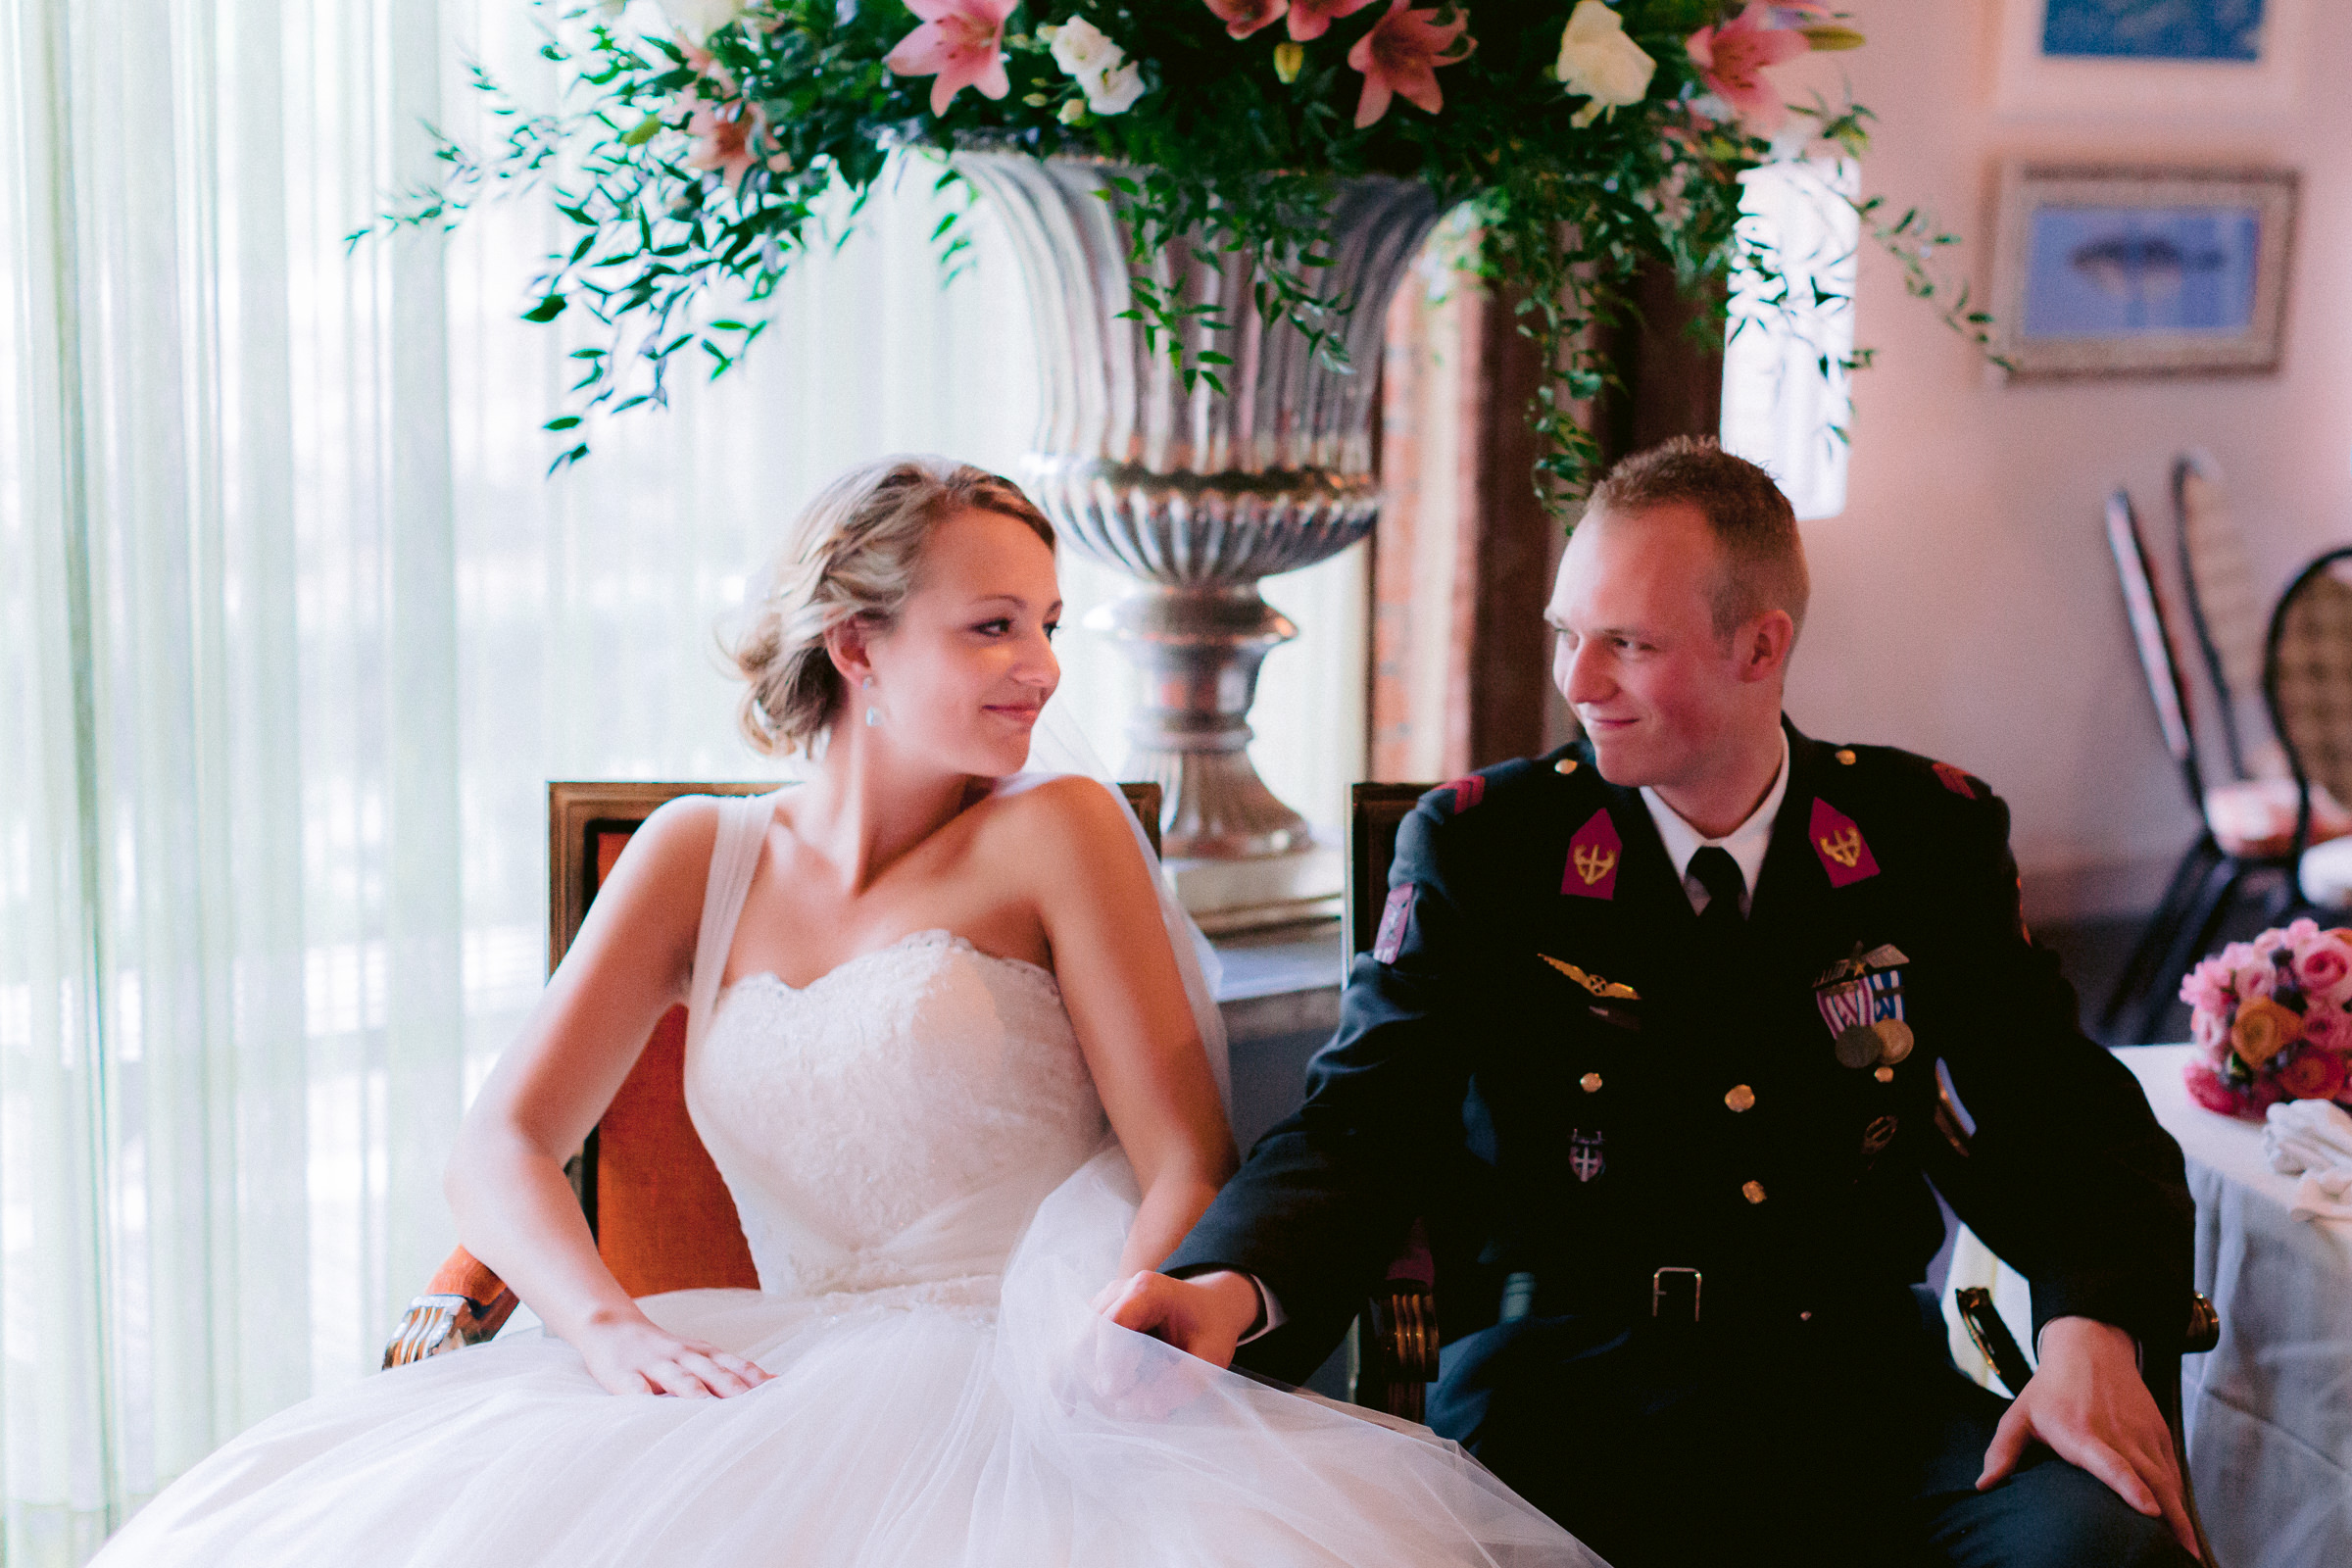 Sassy seated bride with military groom - photo by Peter van der Lingen Wedding Photography